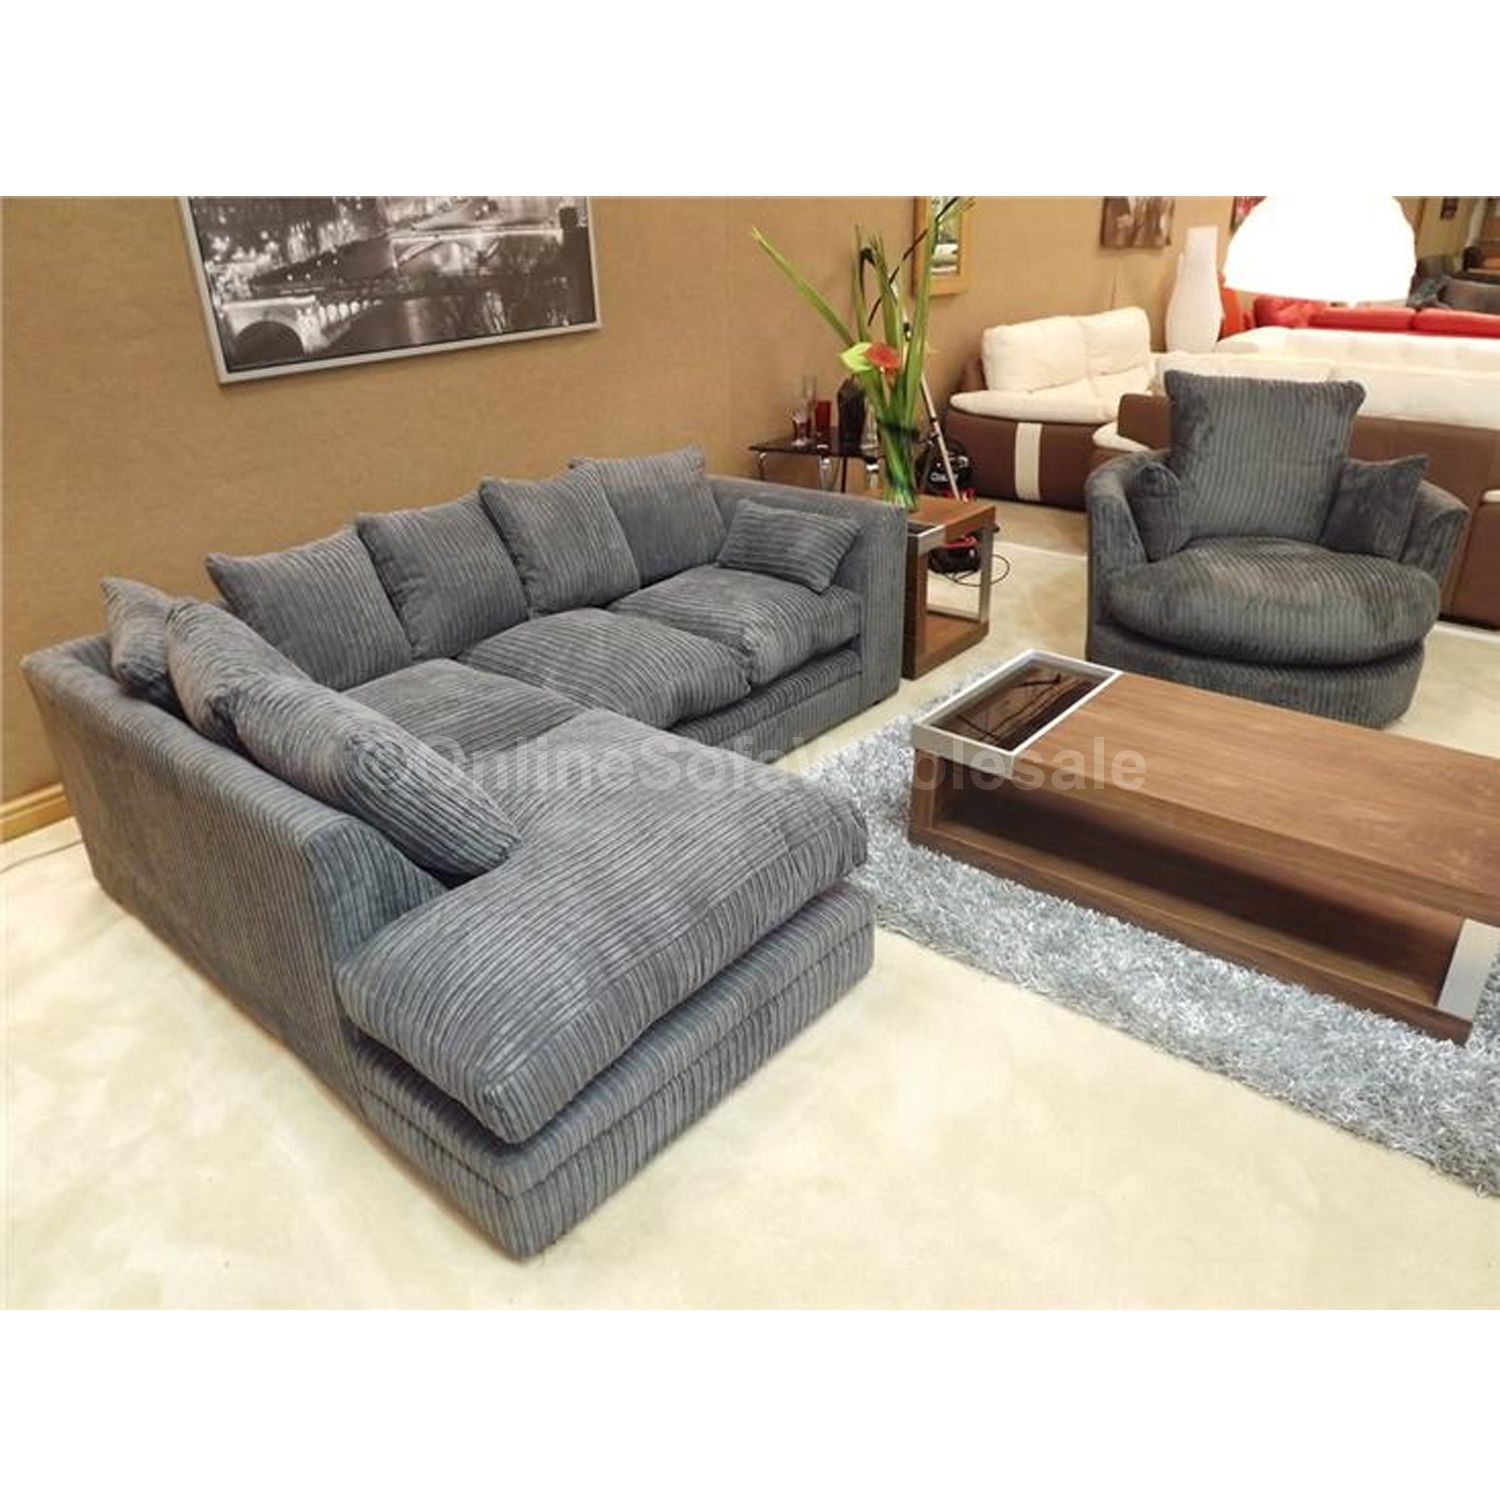 56 Swivel Sofa Chair Seater Sofa And Swivel Chair Dfs In Cardiff With Sofa With Swivel Chair (Image 2 of 15)